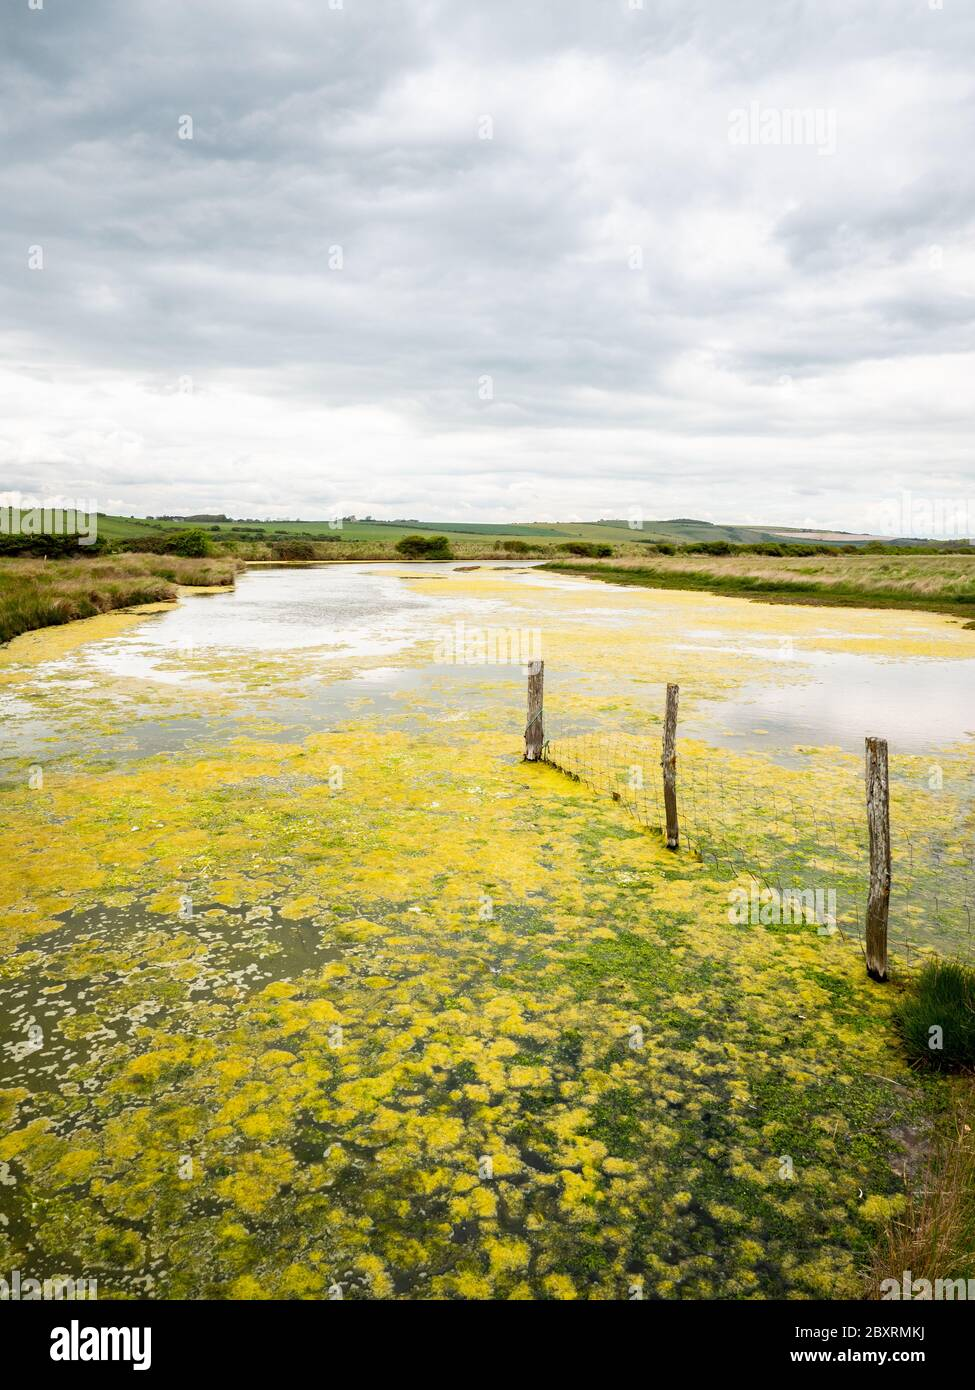 Cuckmere Haven flood plains, South Downs, England. A view over the plains of Cuckmere Haven in East Sussex on the south coast of England. Stock Photo